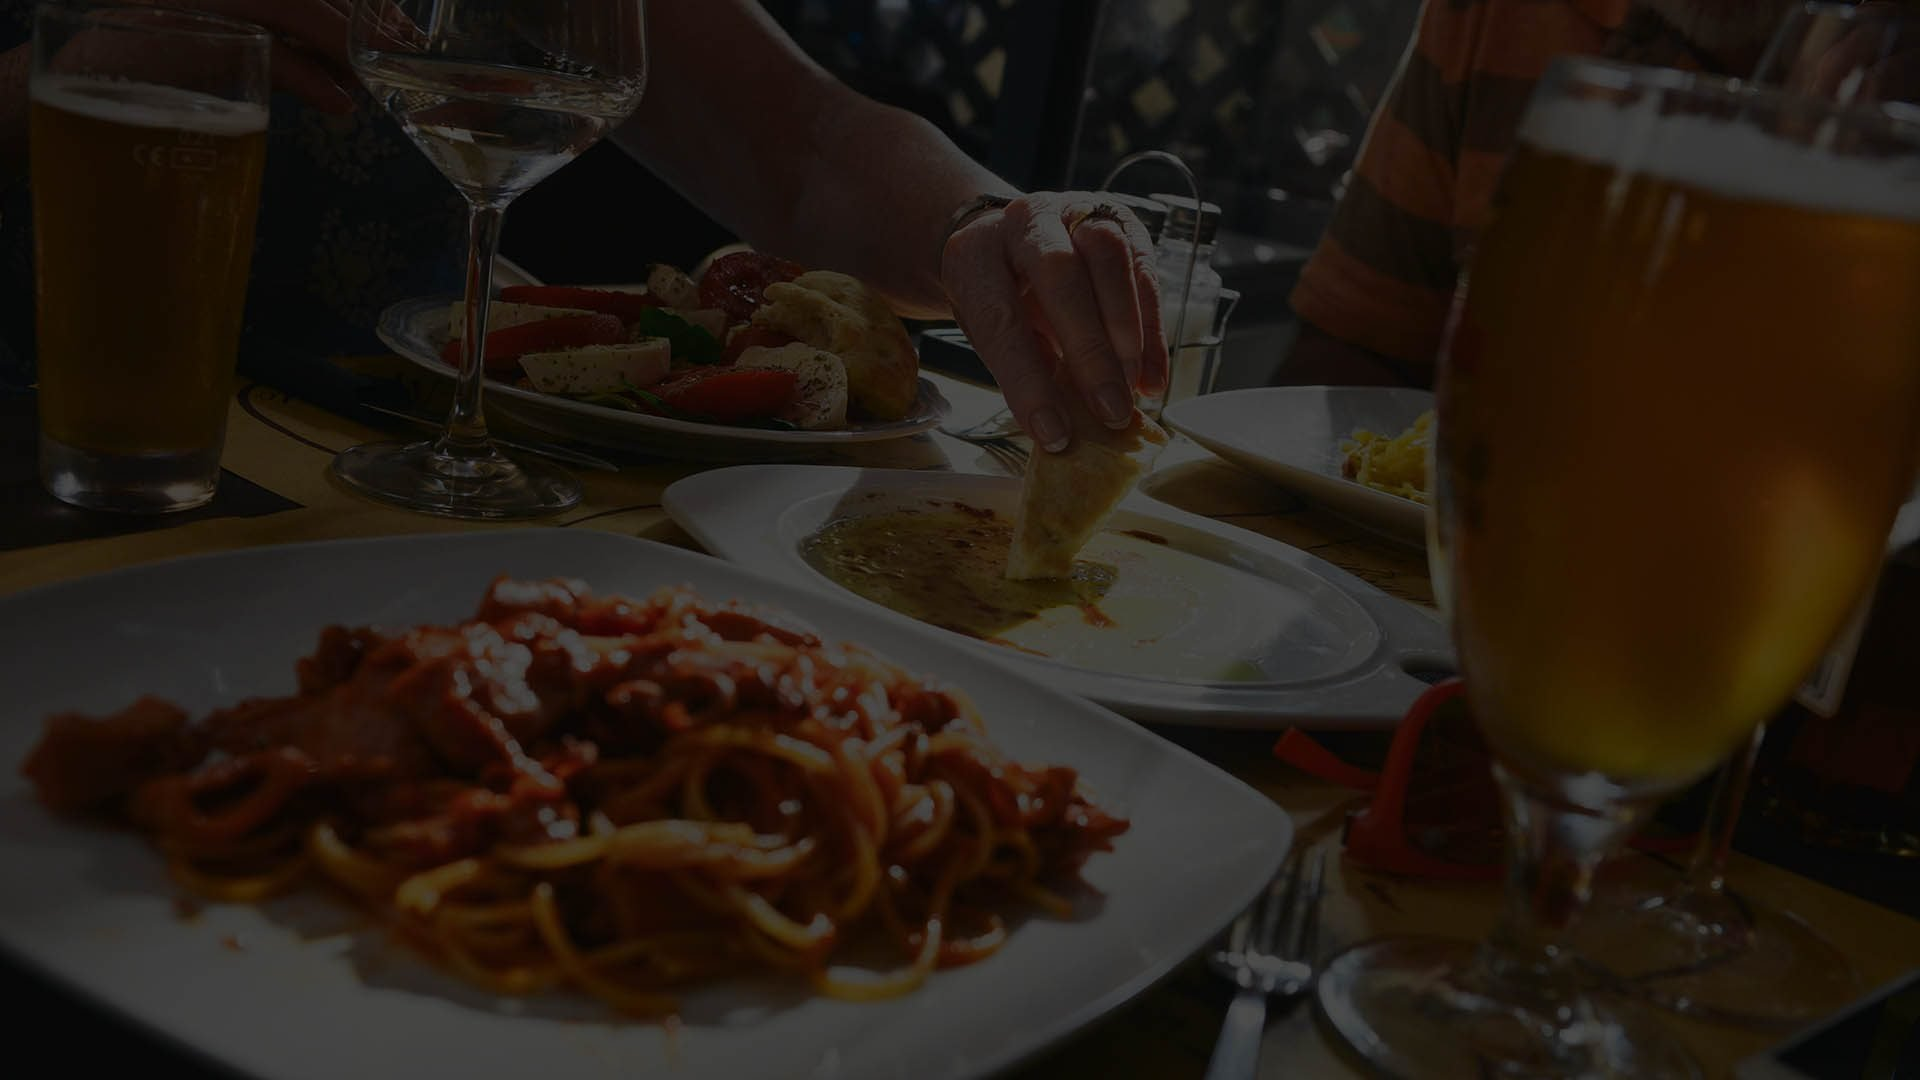 Sunset Lodging Brings You A List Of Our Favorite Restaurants In Sunriver  With Dining Discounts.